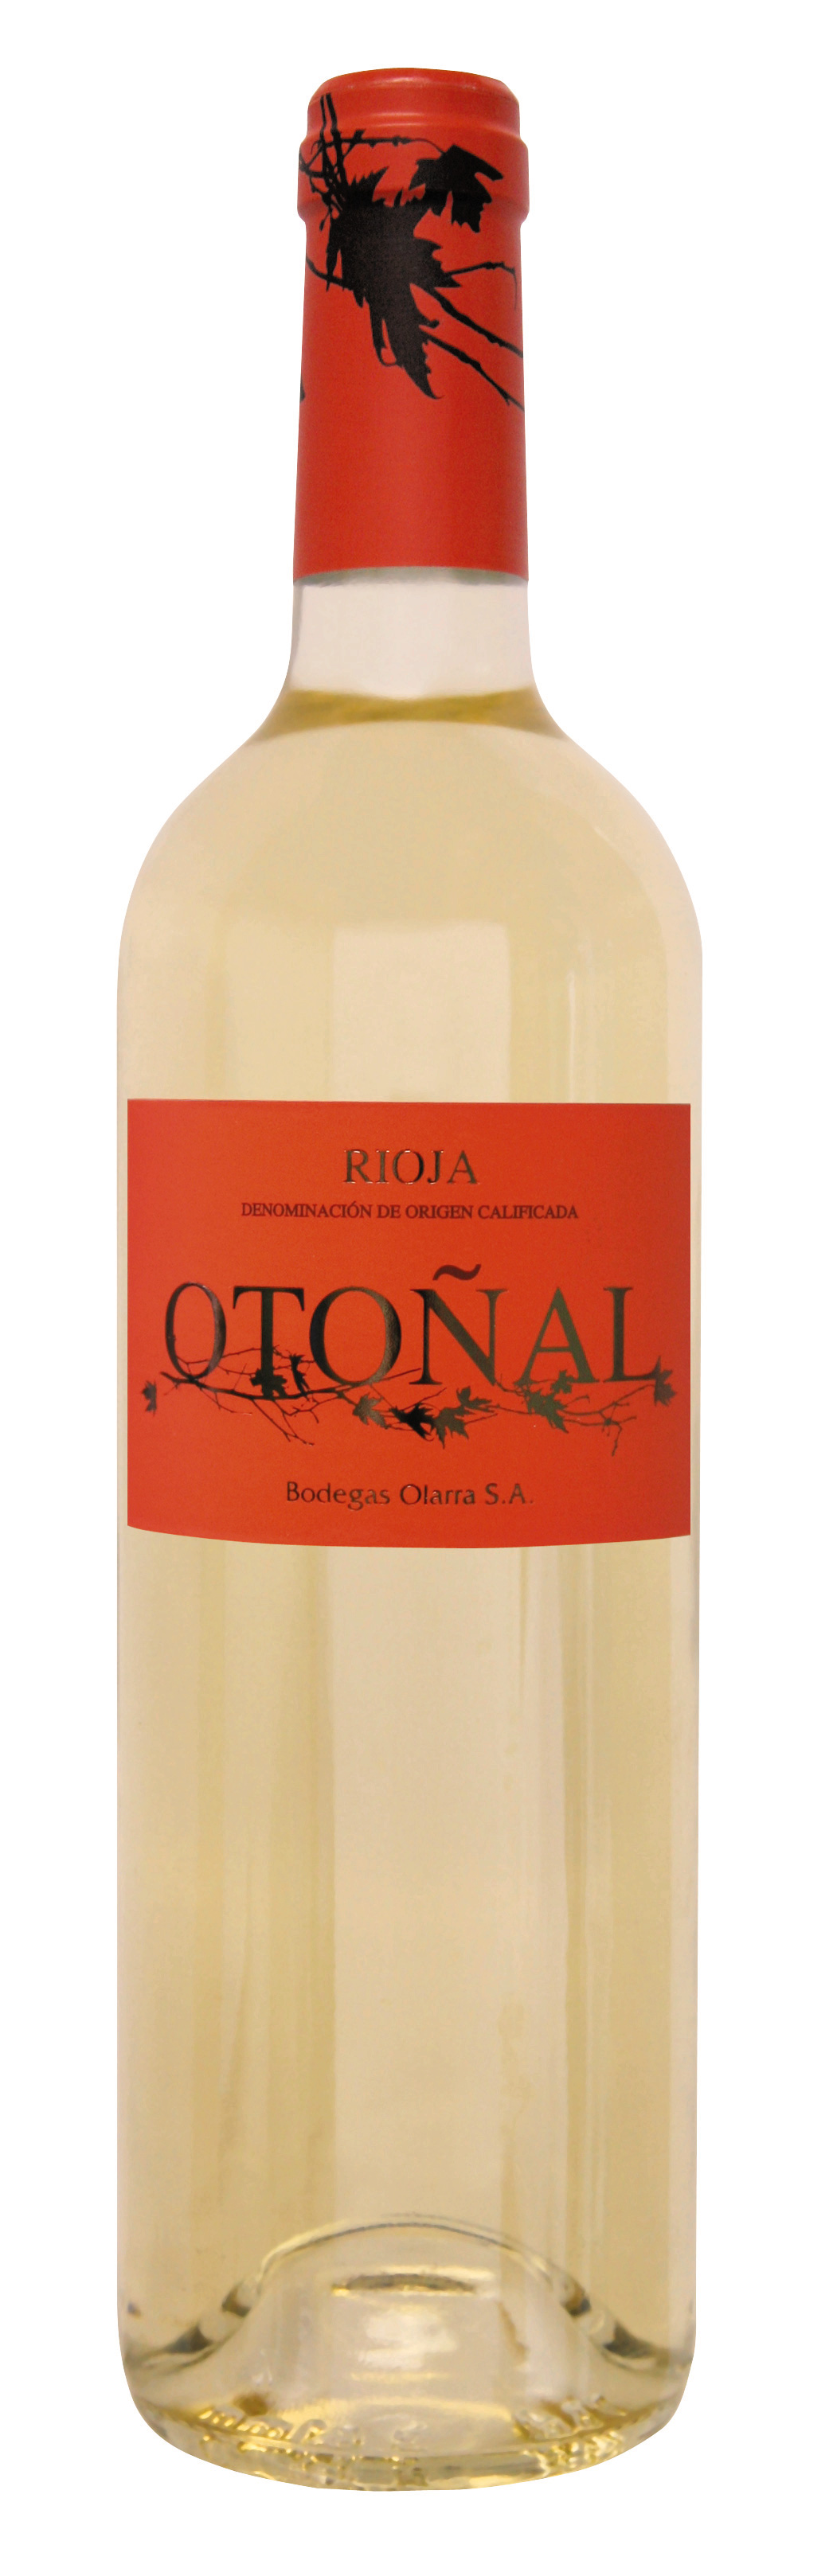 2014er Otonal Blanco Rioja DO